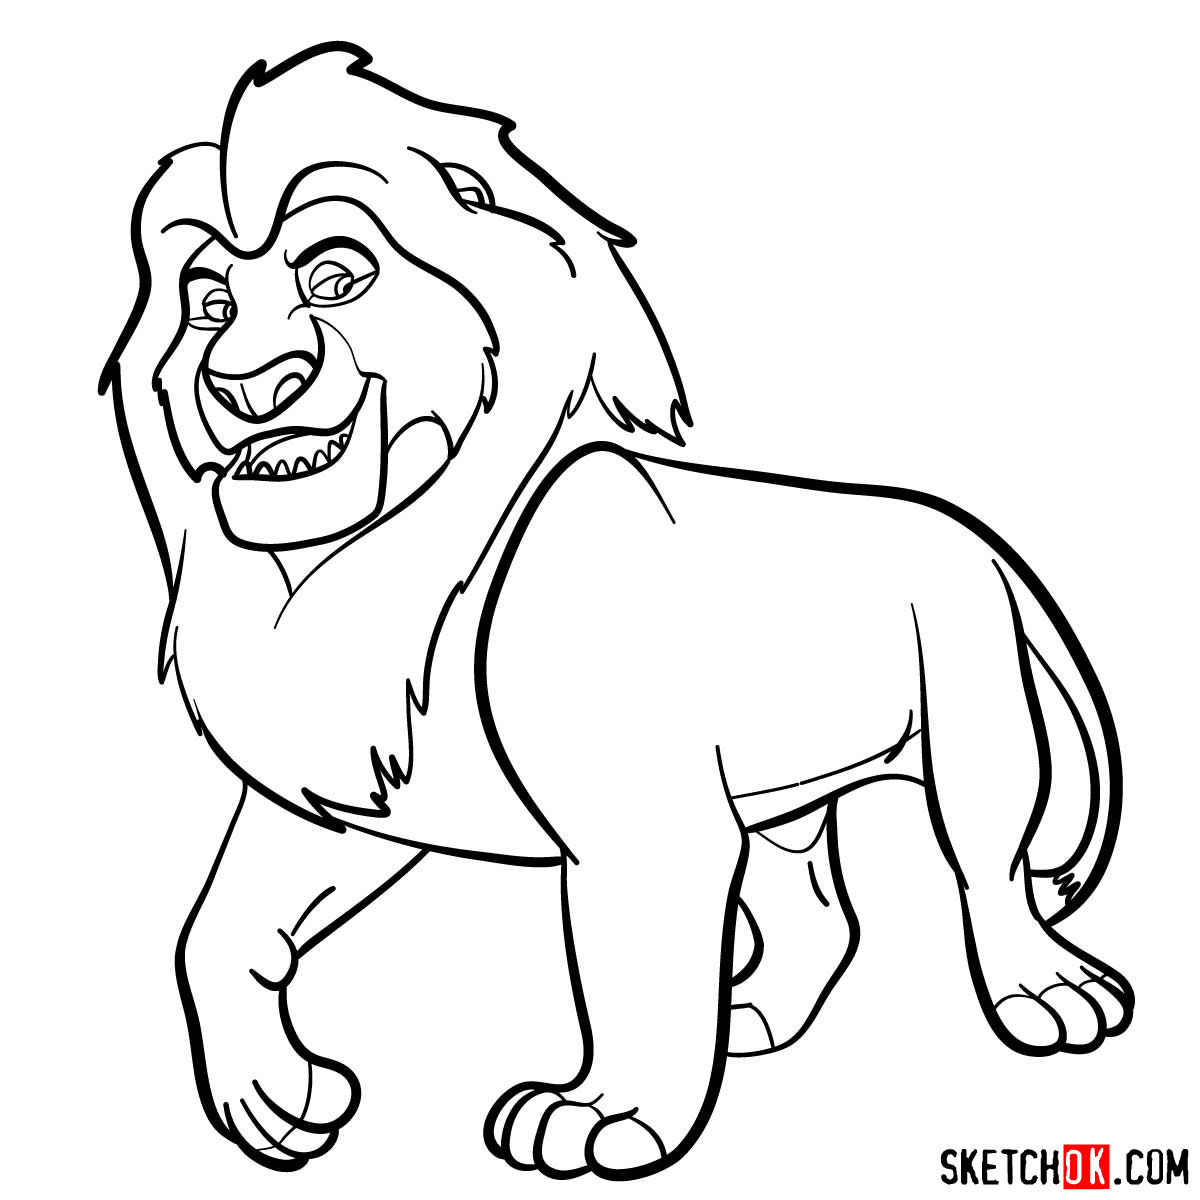 How to draw Mufasa | Lion King